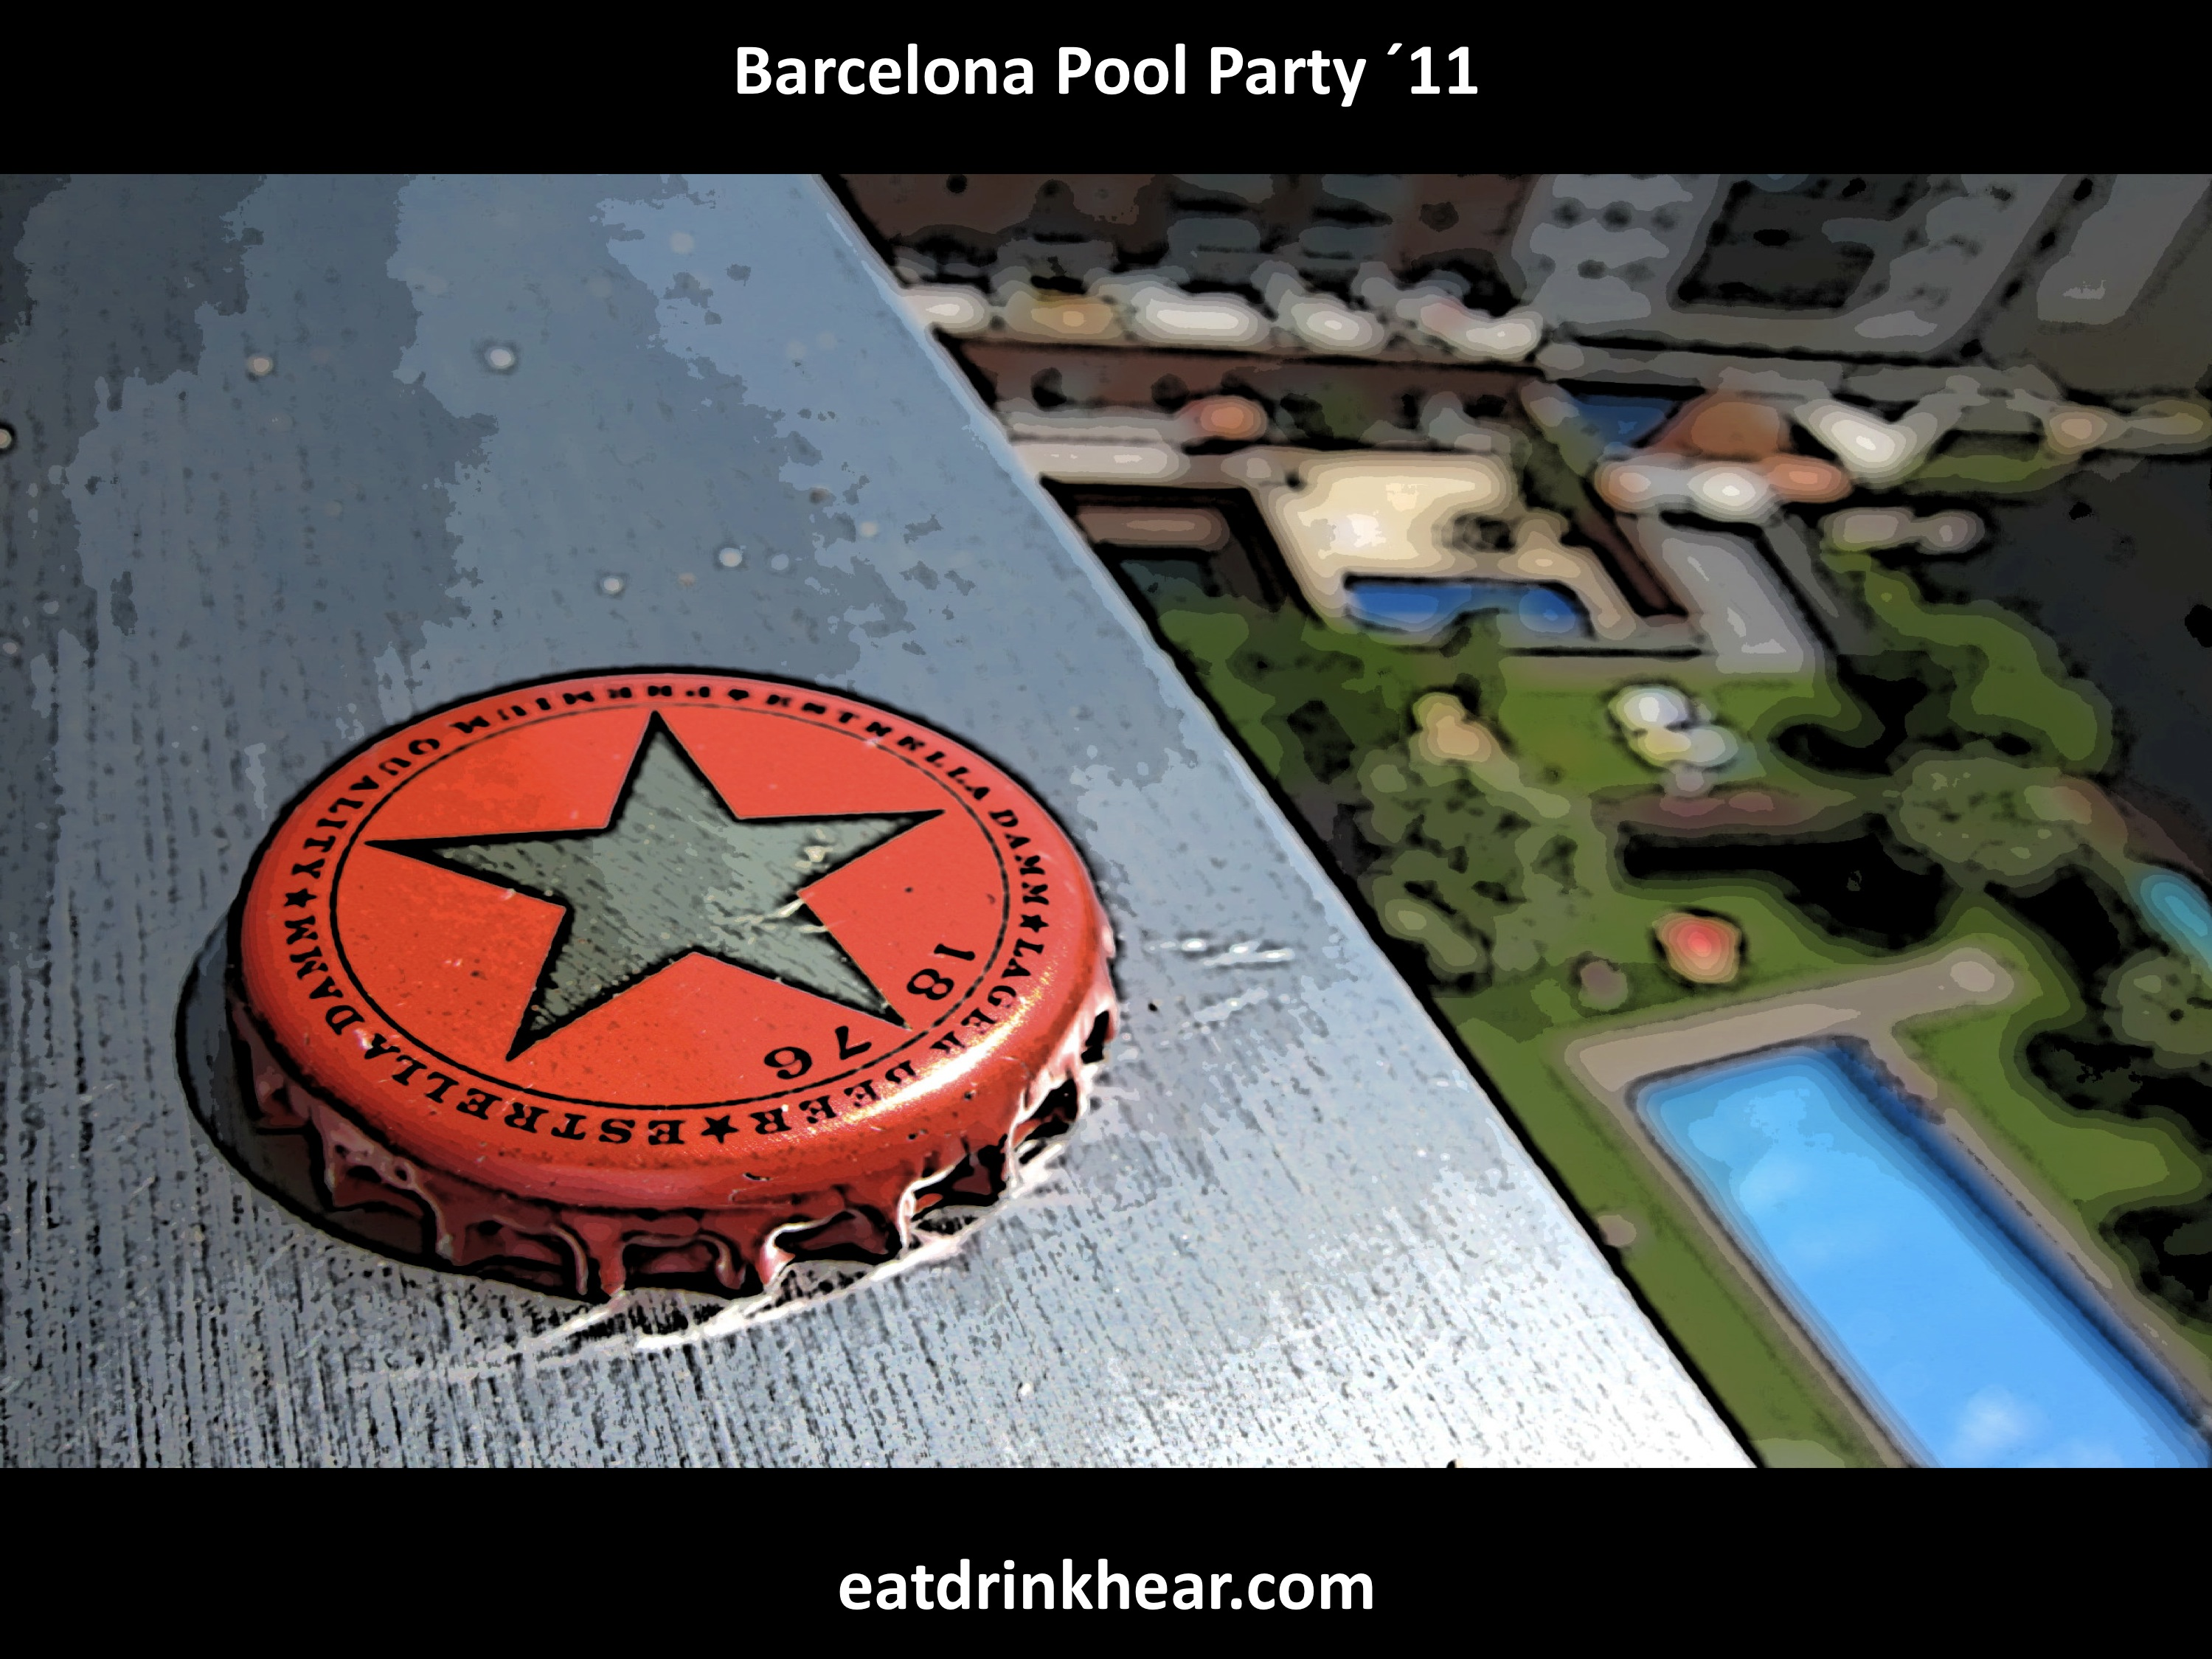 <!--:de-->Barcelona Pool Party '11 – Chefkoch<!--:--><!--:en-->Barcelona Pool Party '11 – Chefkoch<!--:-->